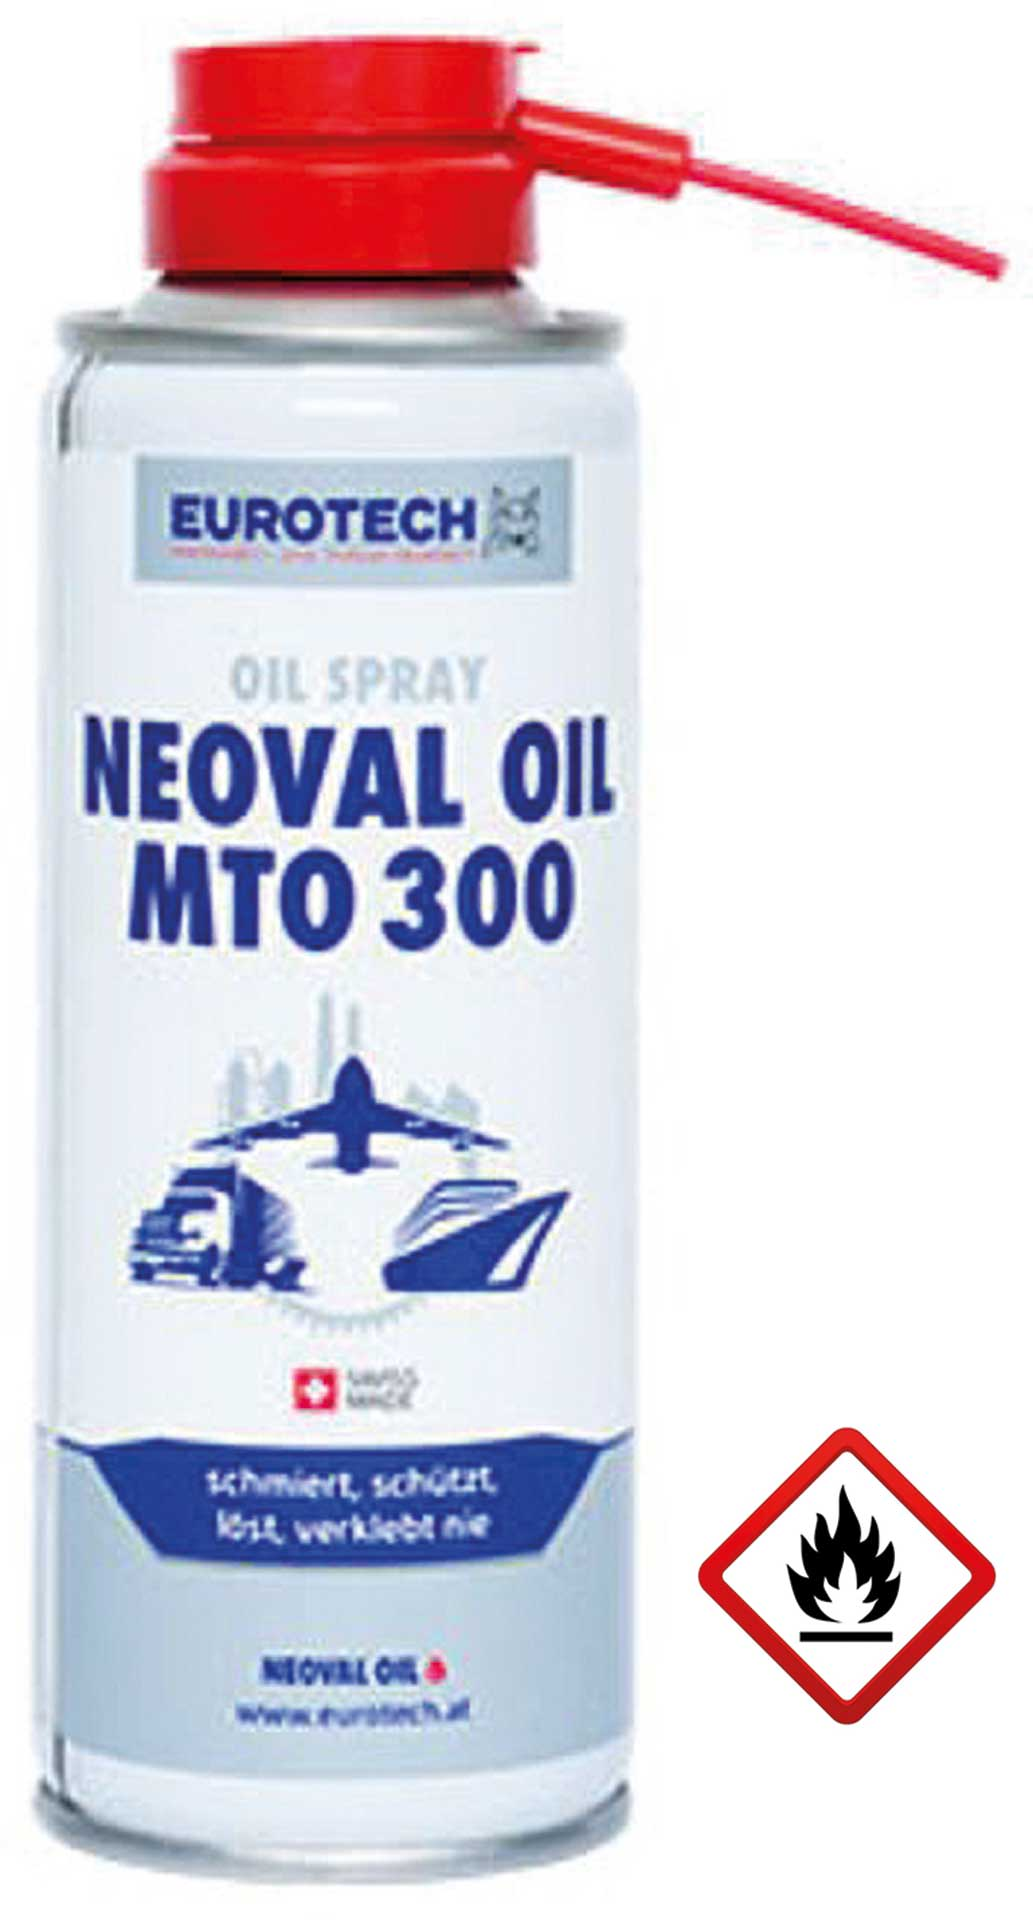 EUROTECH NEOVAL OIL MTO 300 200ML